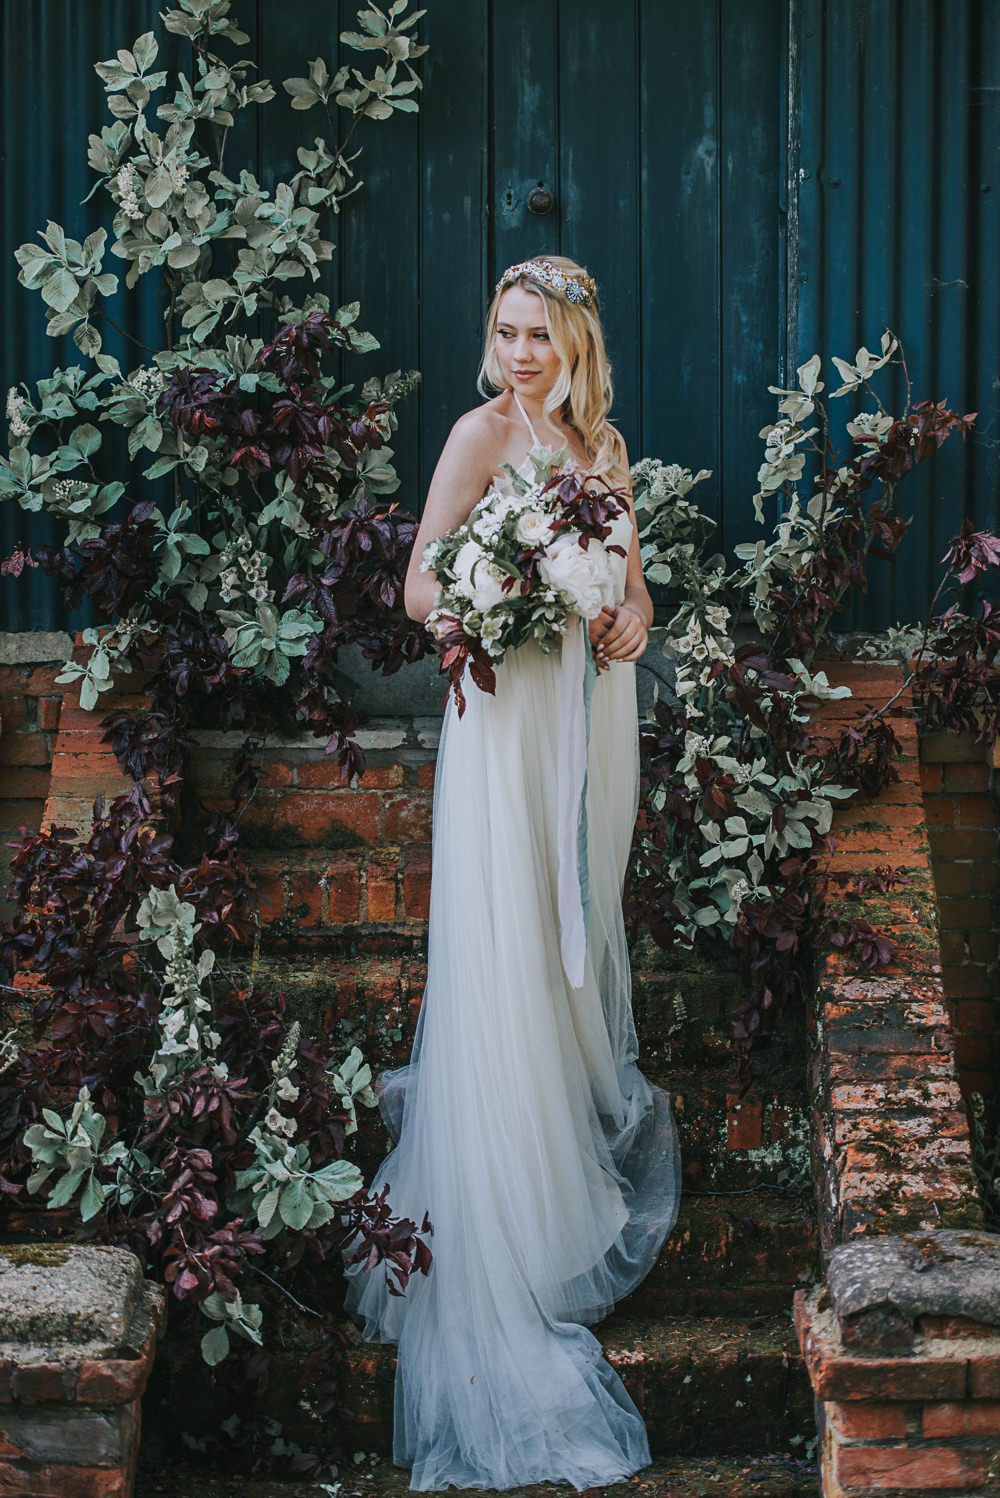 Secret Dresshouse Ethereal Bride Bridal Gown Hairpiece Leaf Foliage Flower Florals River Romance Wedding Ideas Mindy Coe Photography